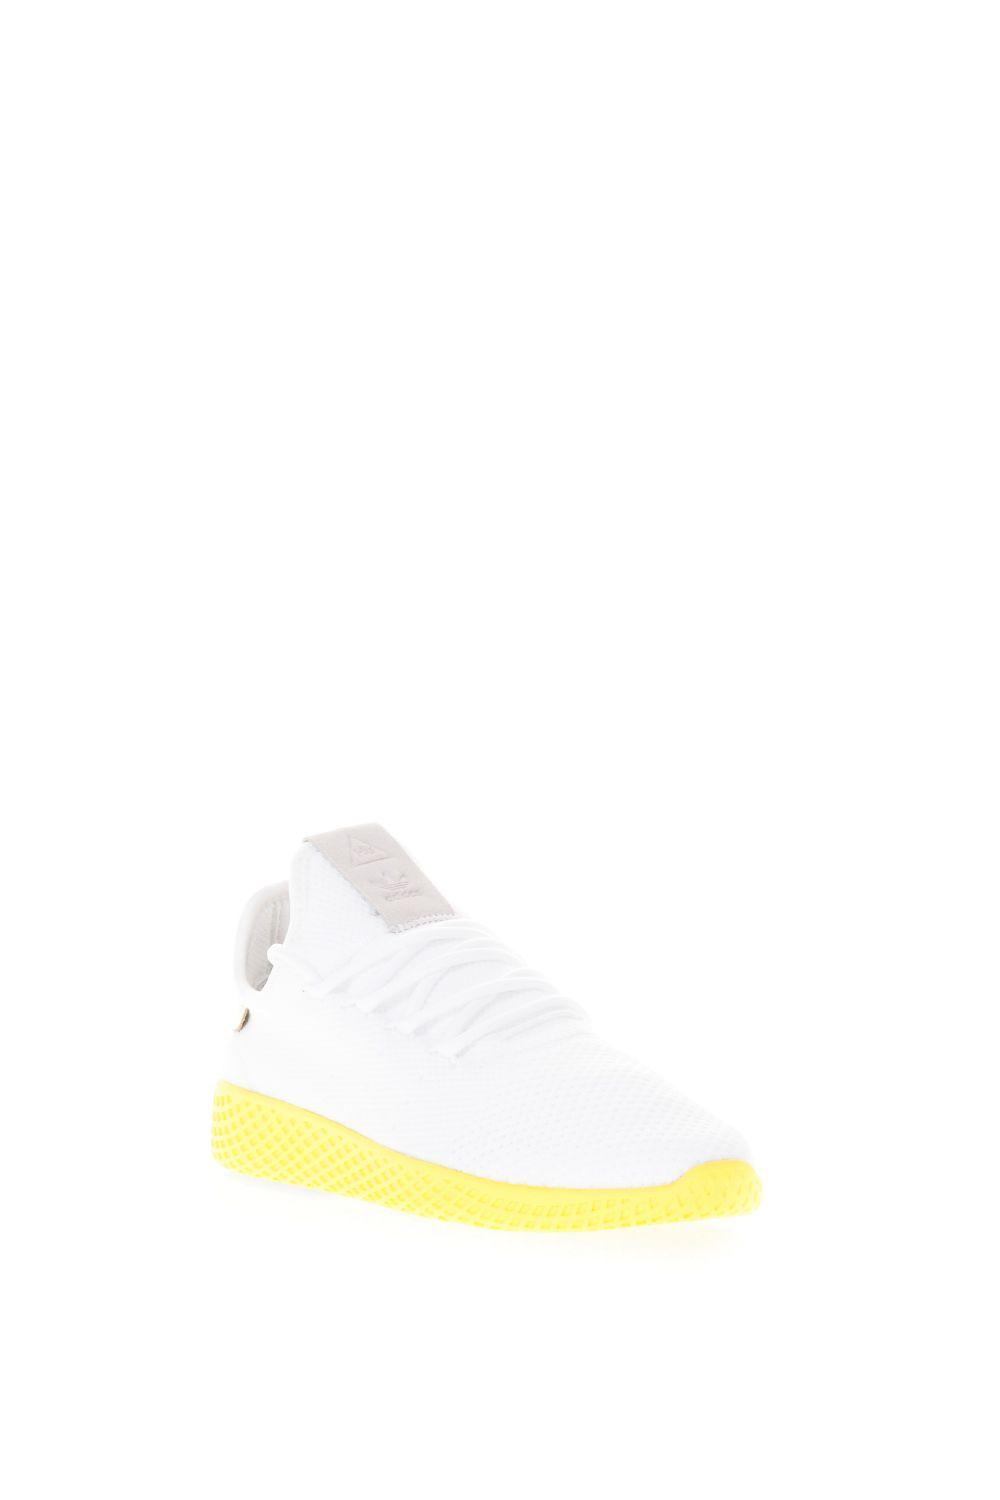 huge selection of 3dd2b 0eb41 Adidas Originals X Pharrell Williams Tennis Hu Primeknit Shoes In  White-Yellow